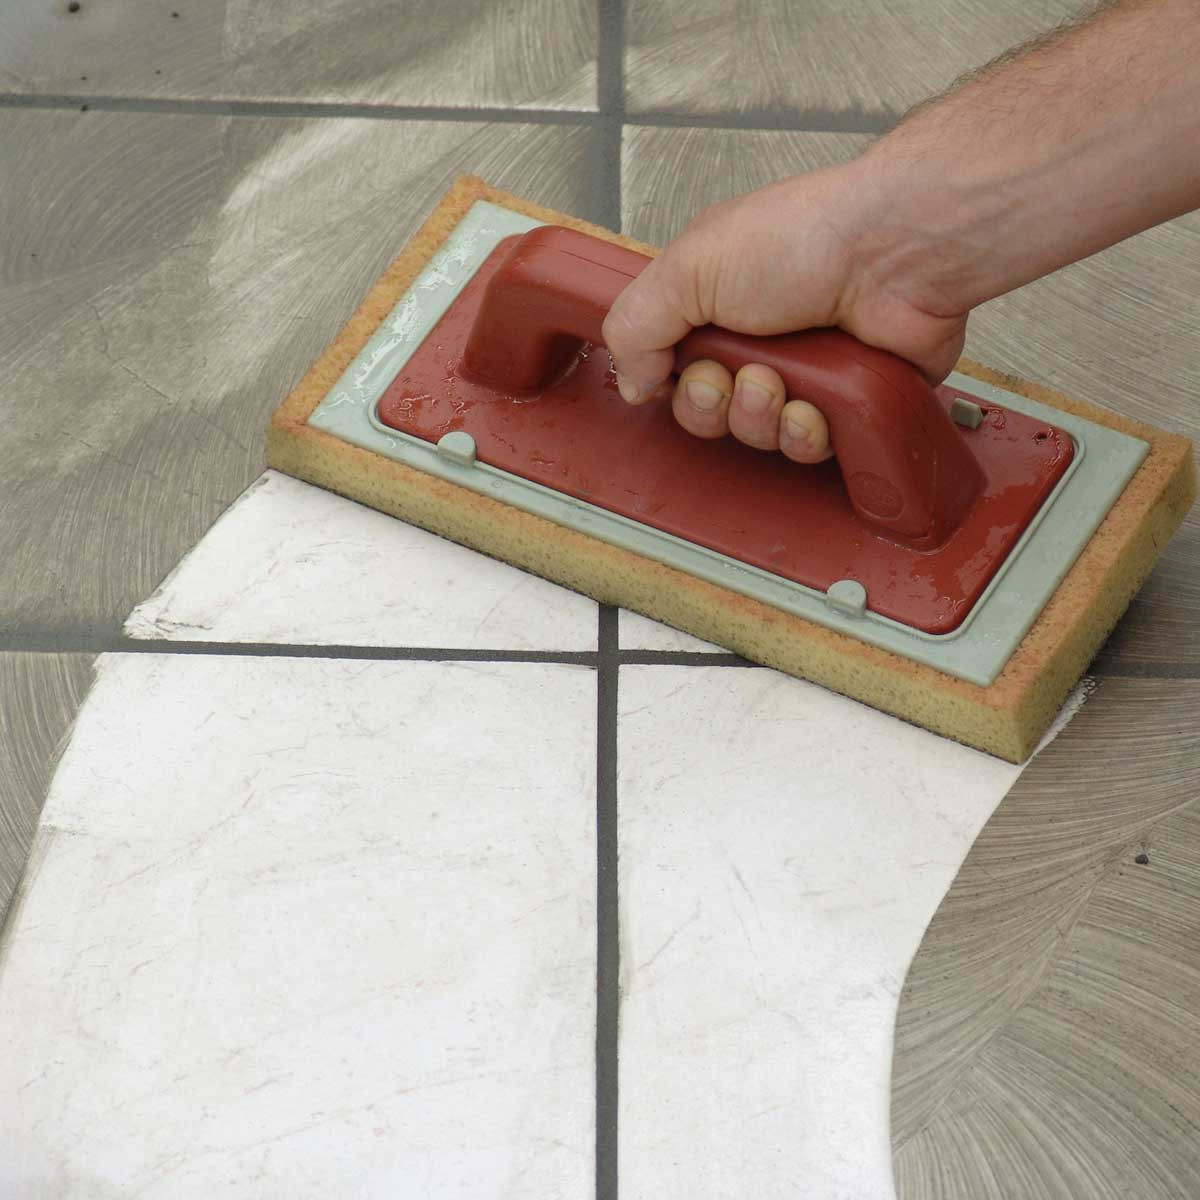 Raimondi Smart sponge swipe